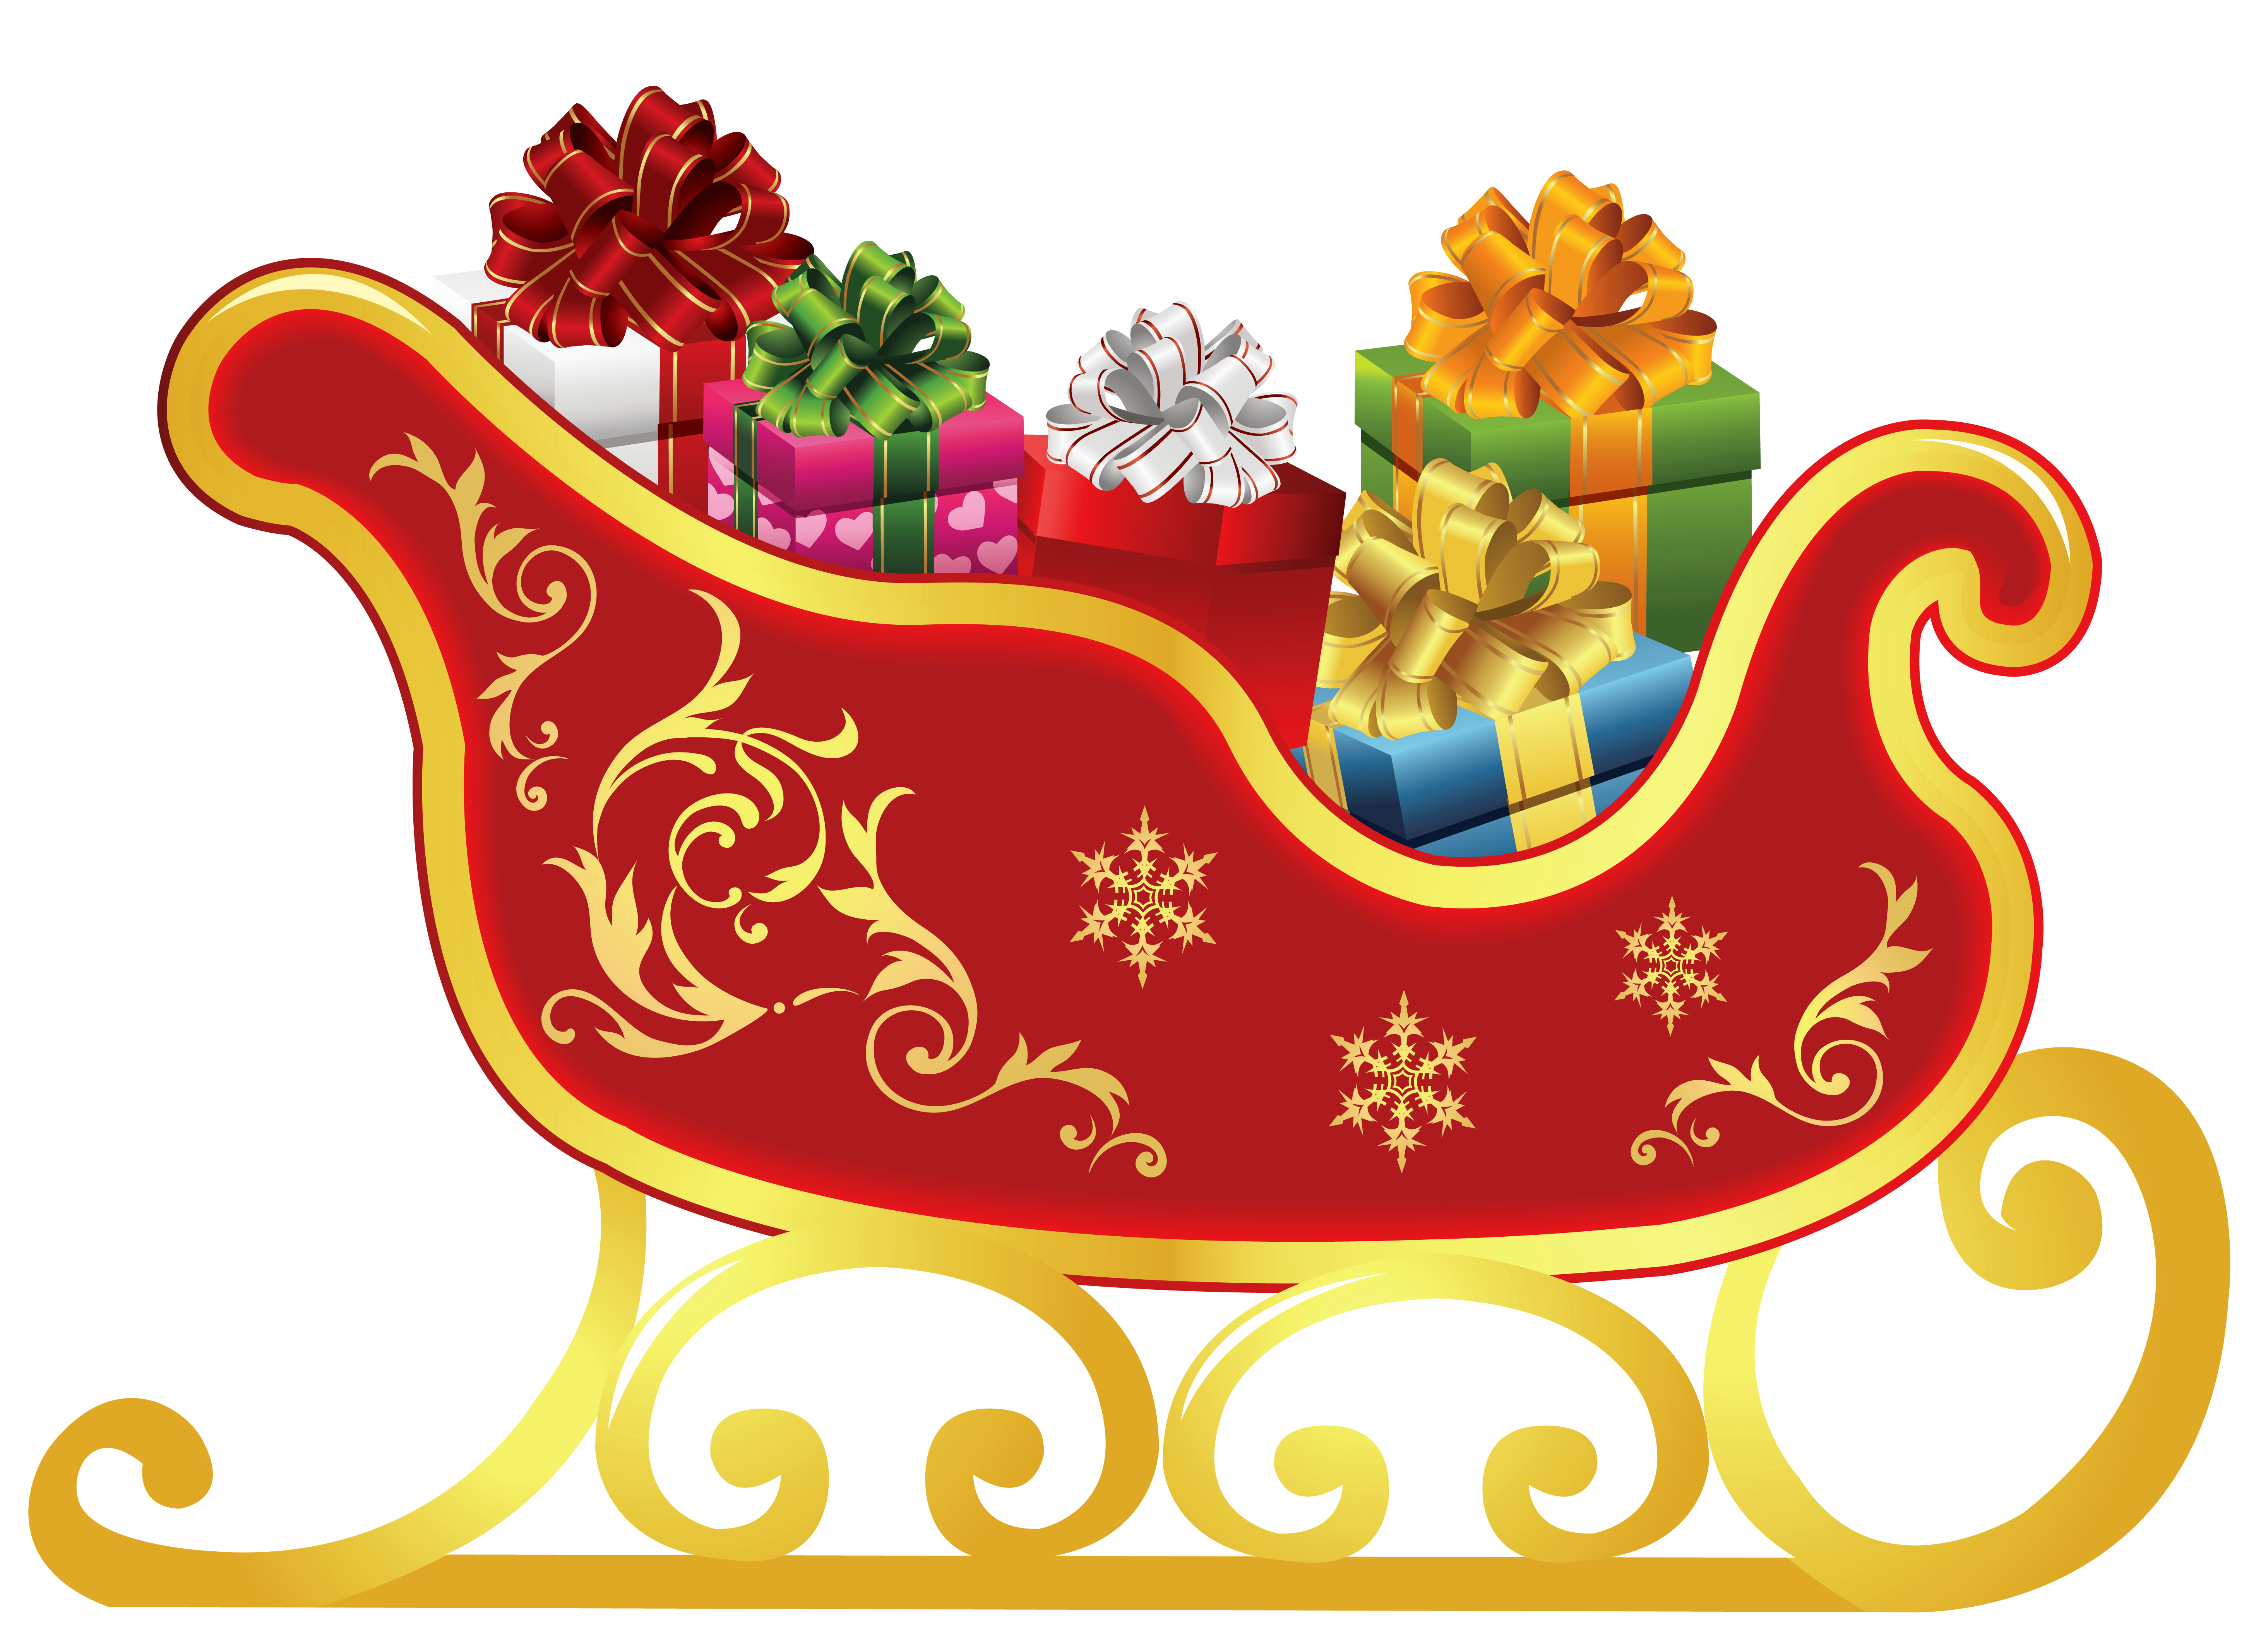 Free cliparts download clip. Sleigh clipart jpeg